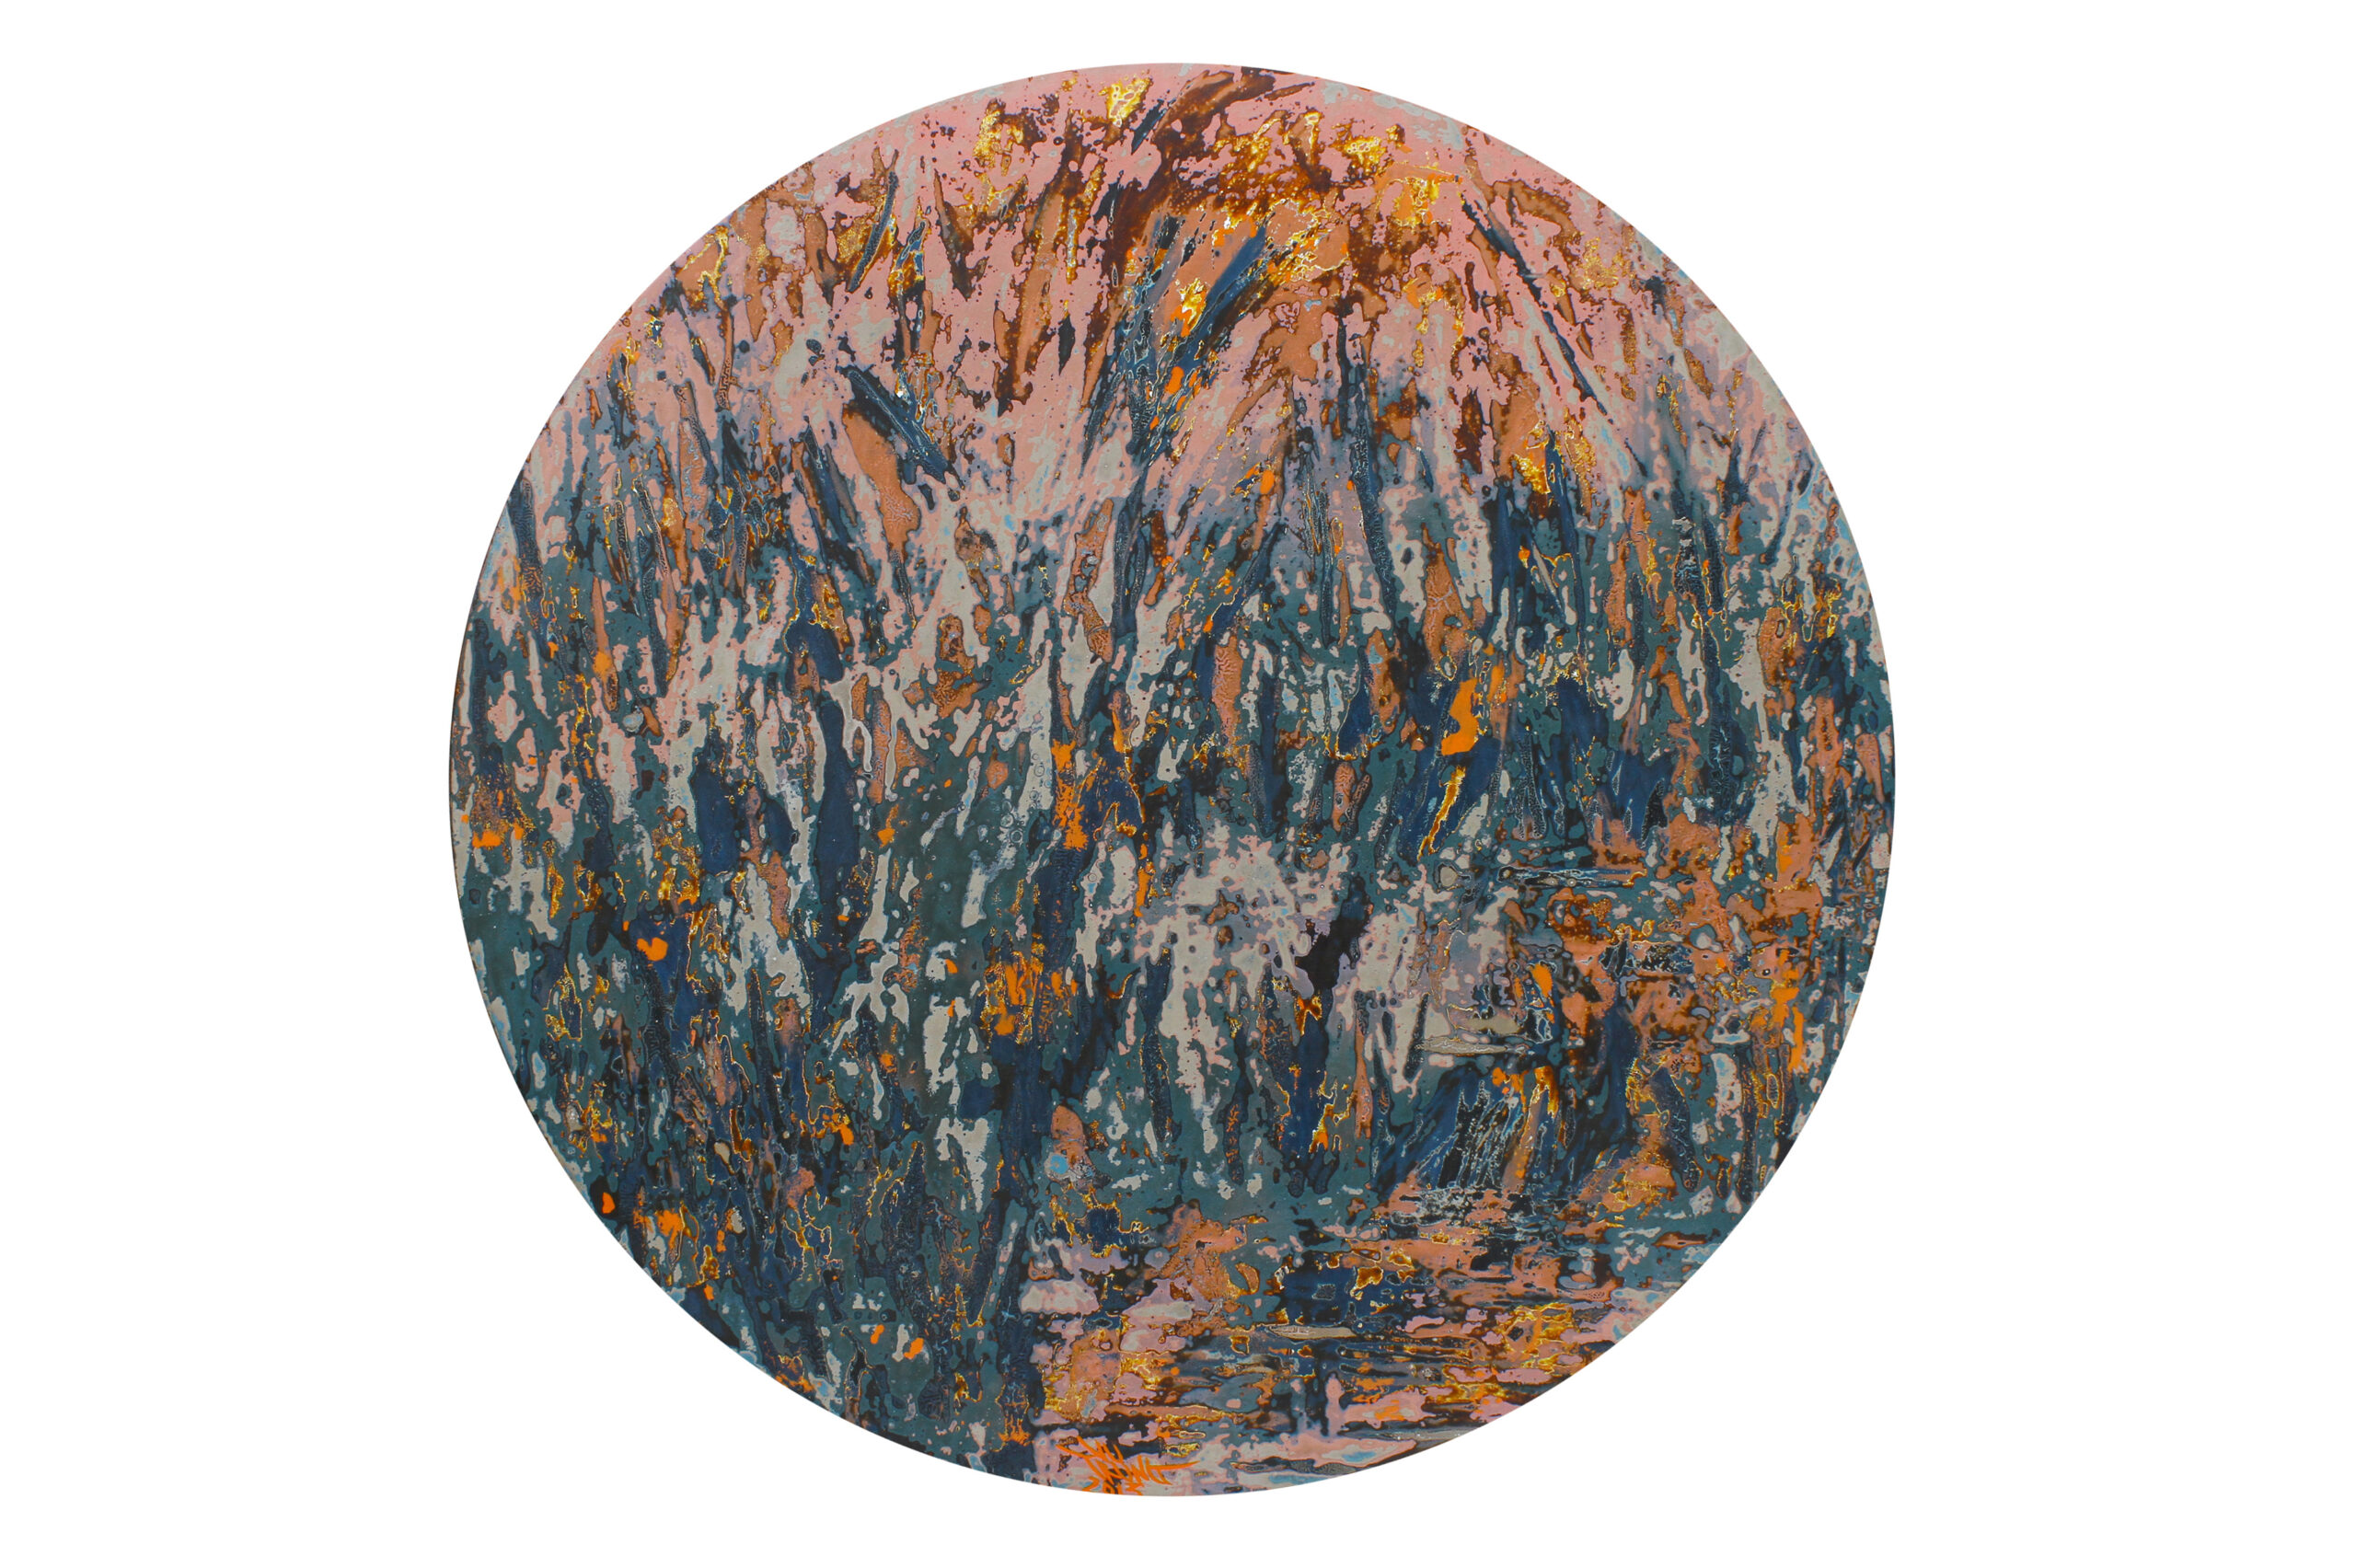 Red Wildgrass by Vu Duc Trung, lacquer on wood, 2013, 60 cm sphere